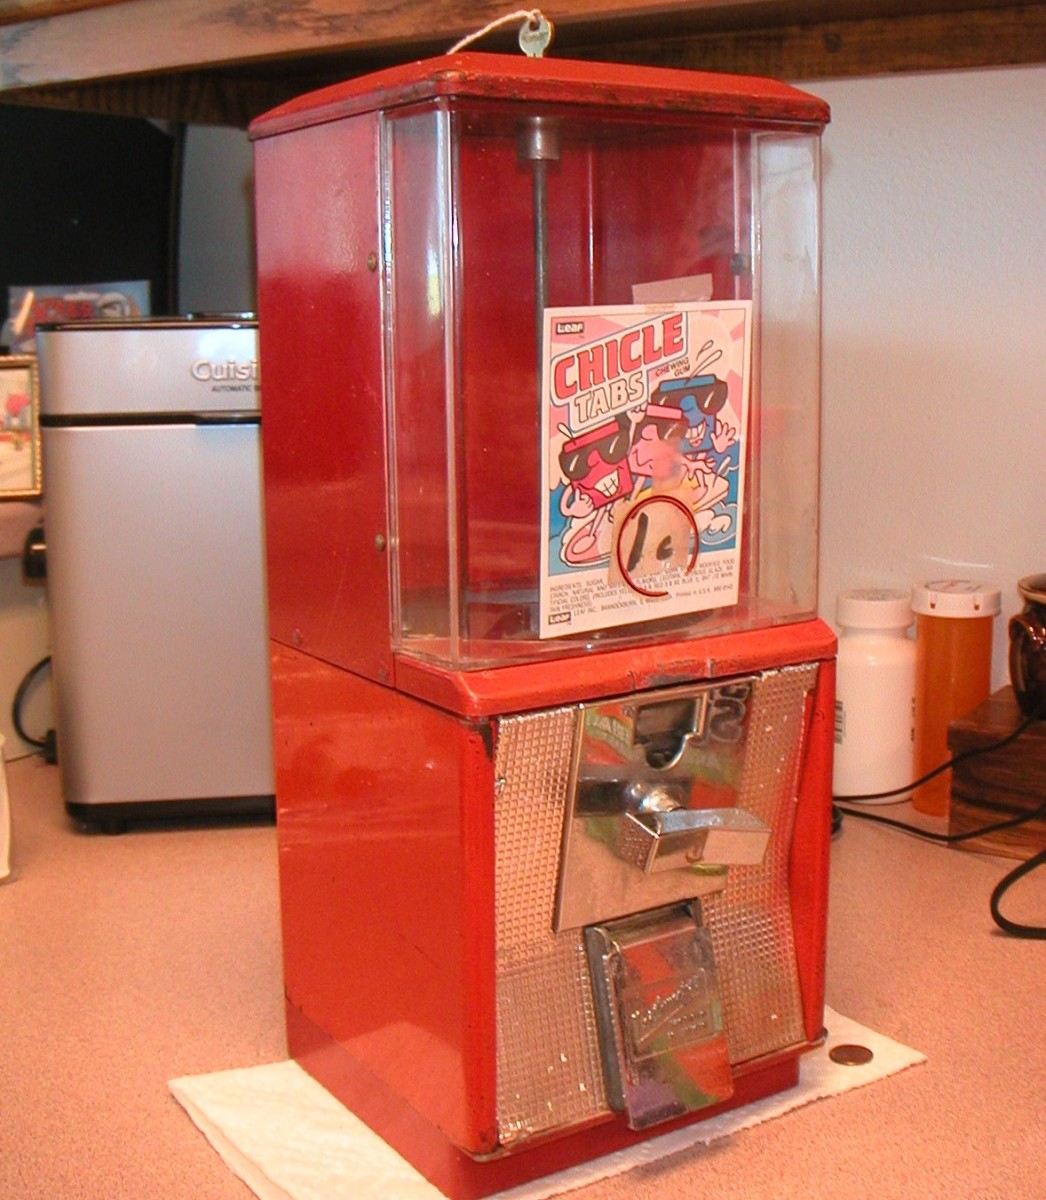 Gumball machines can be refurbished and reused in a family room or man-cave.